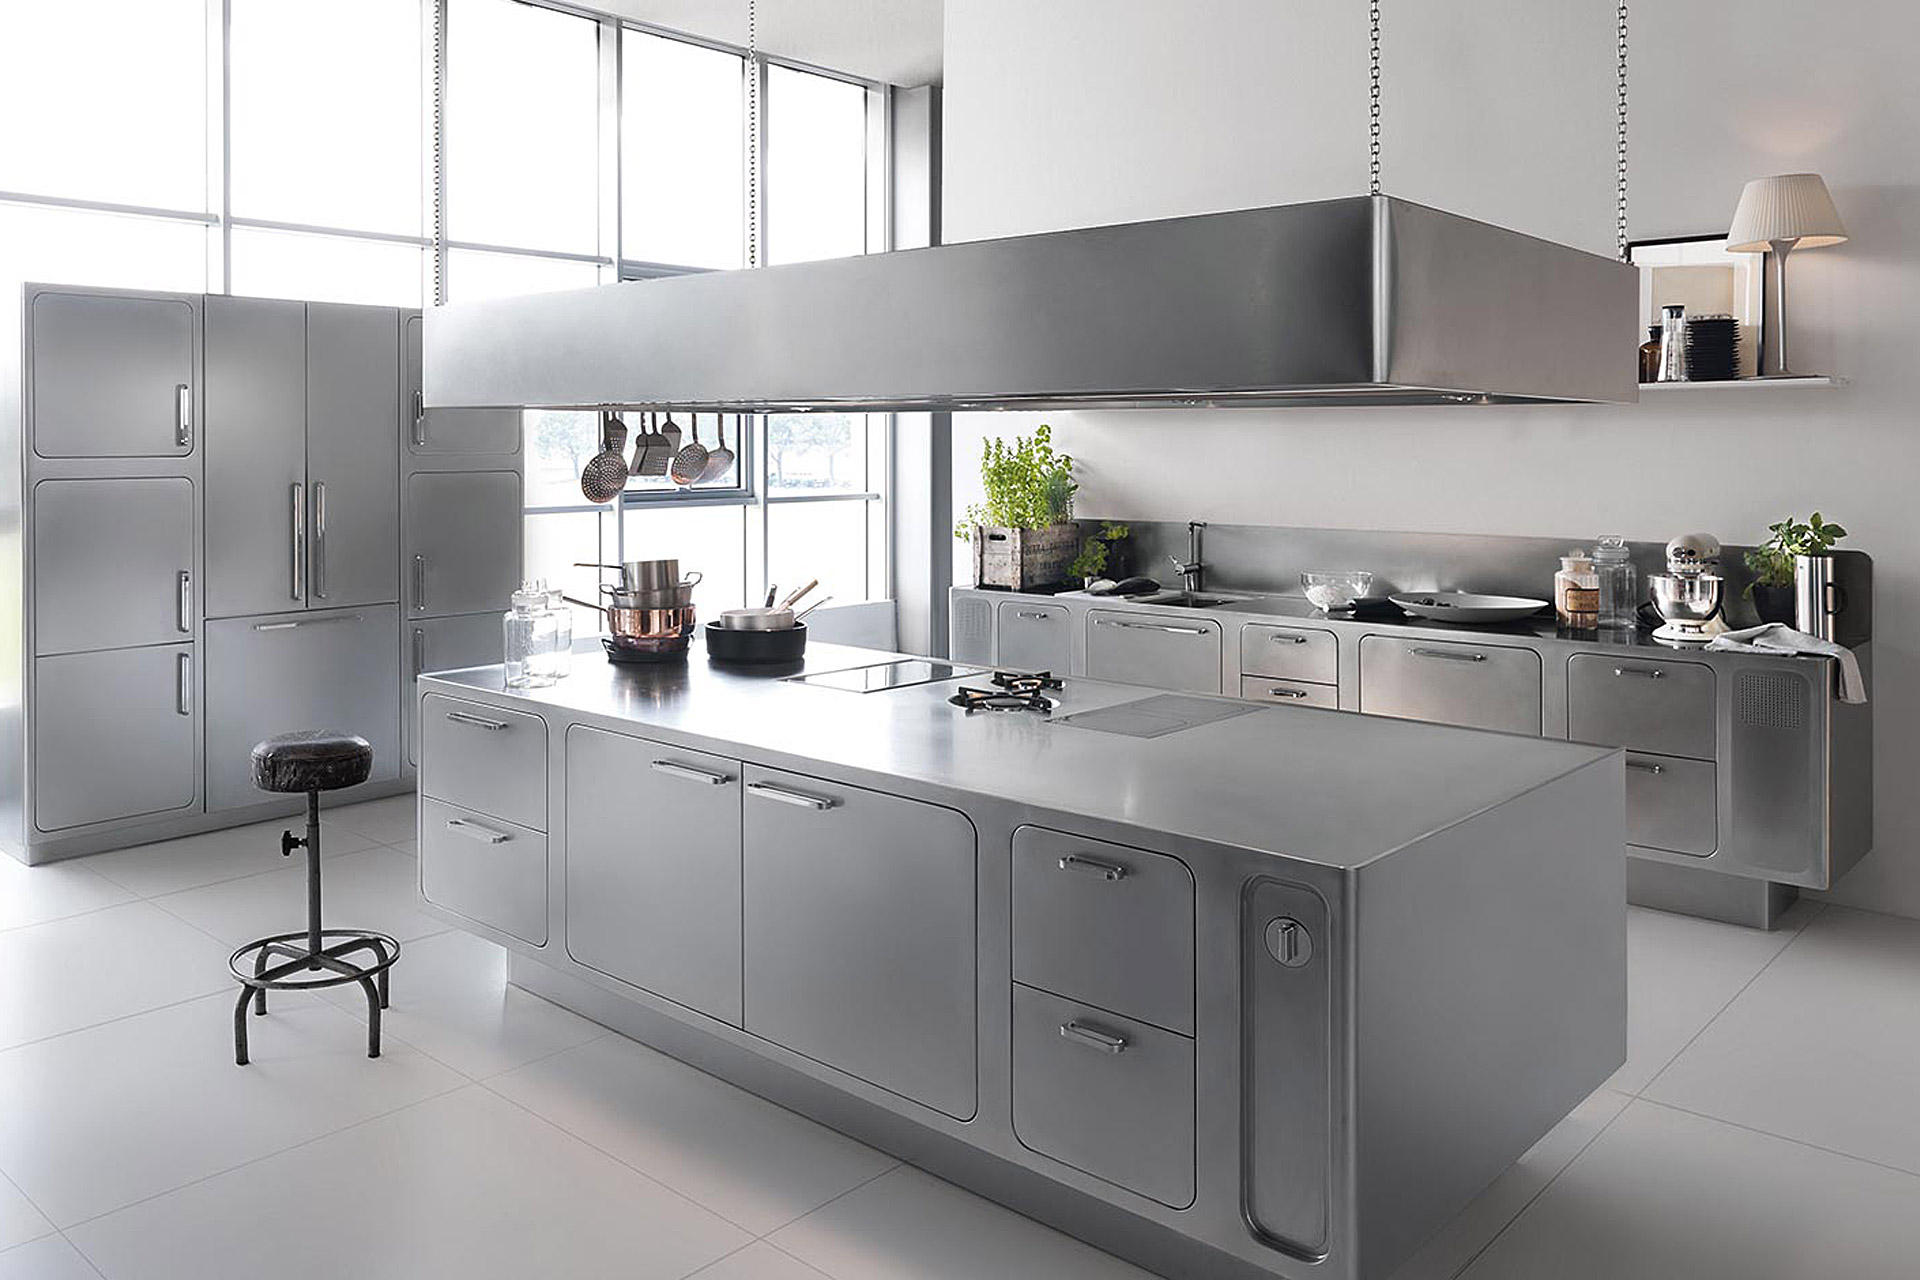 Abimis Bespoke Stainless Steel Kitchens